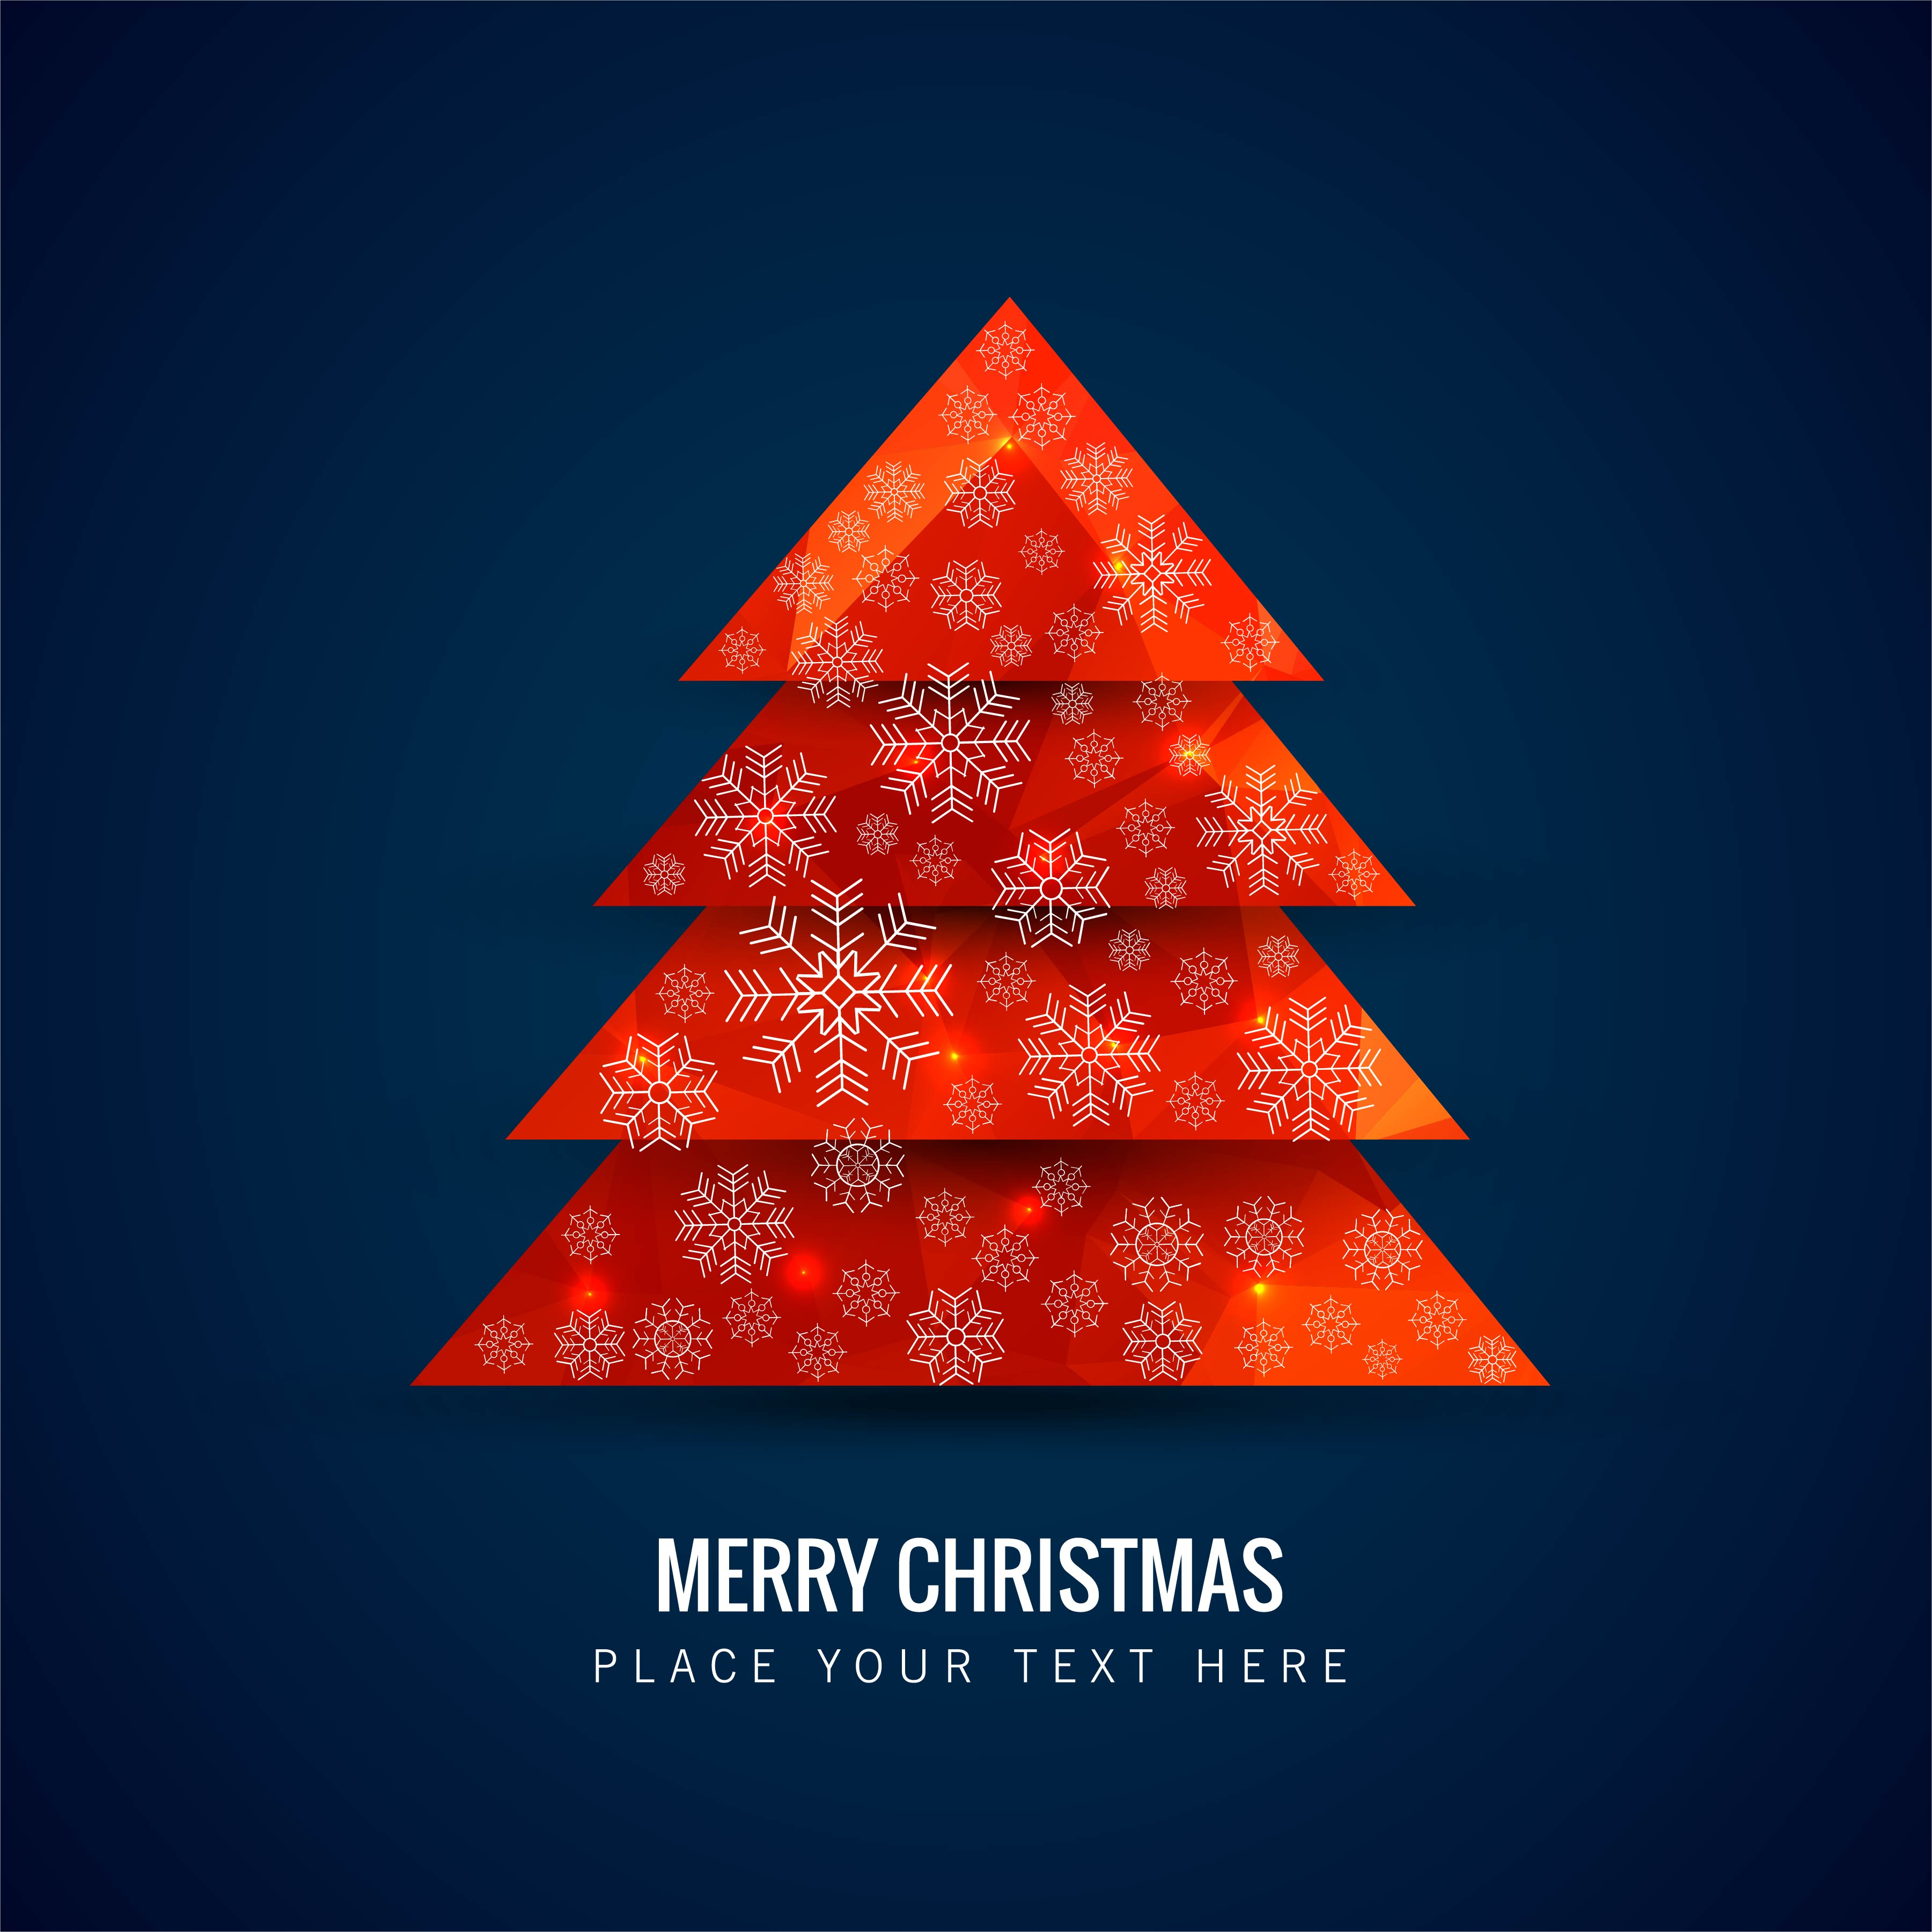 Modern Christmas Tree Shiny Background Download Free Vectors Clipart Graphics Vector Art